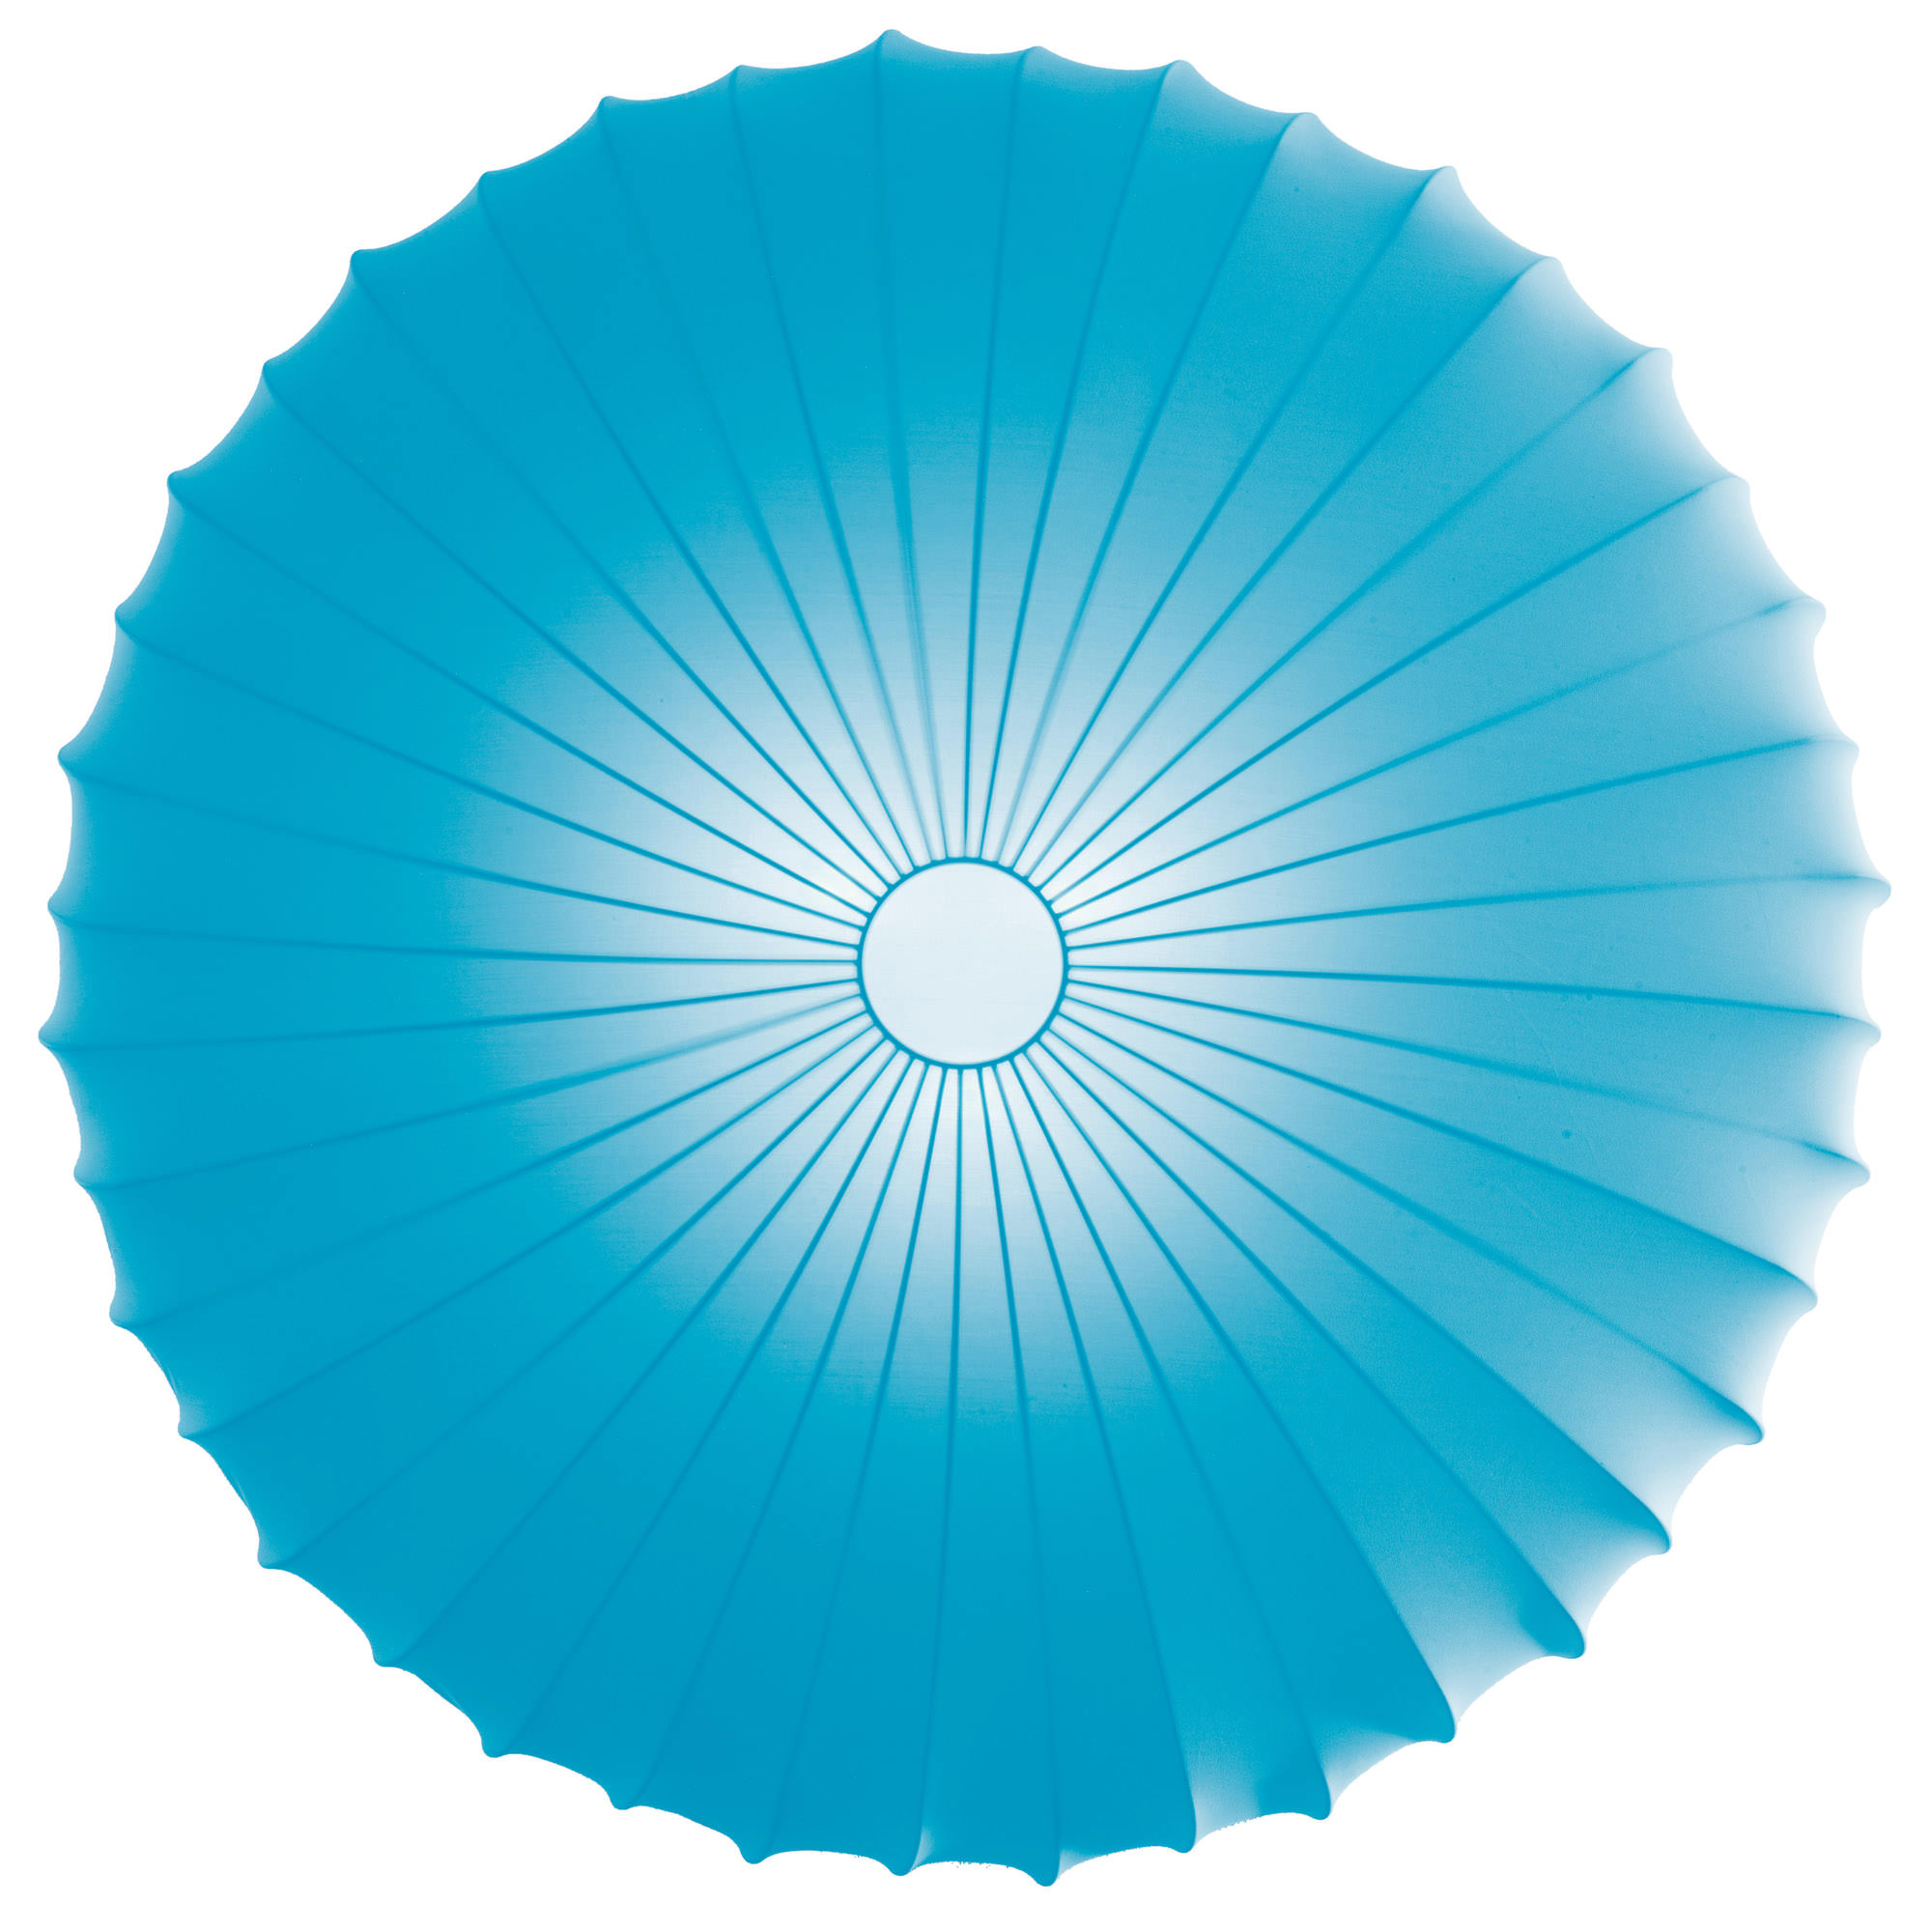 Muse 80 ceiling lamp E27 3x23w Light Blue